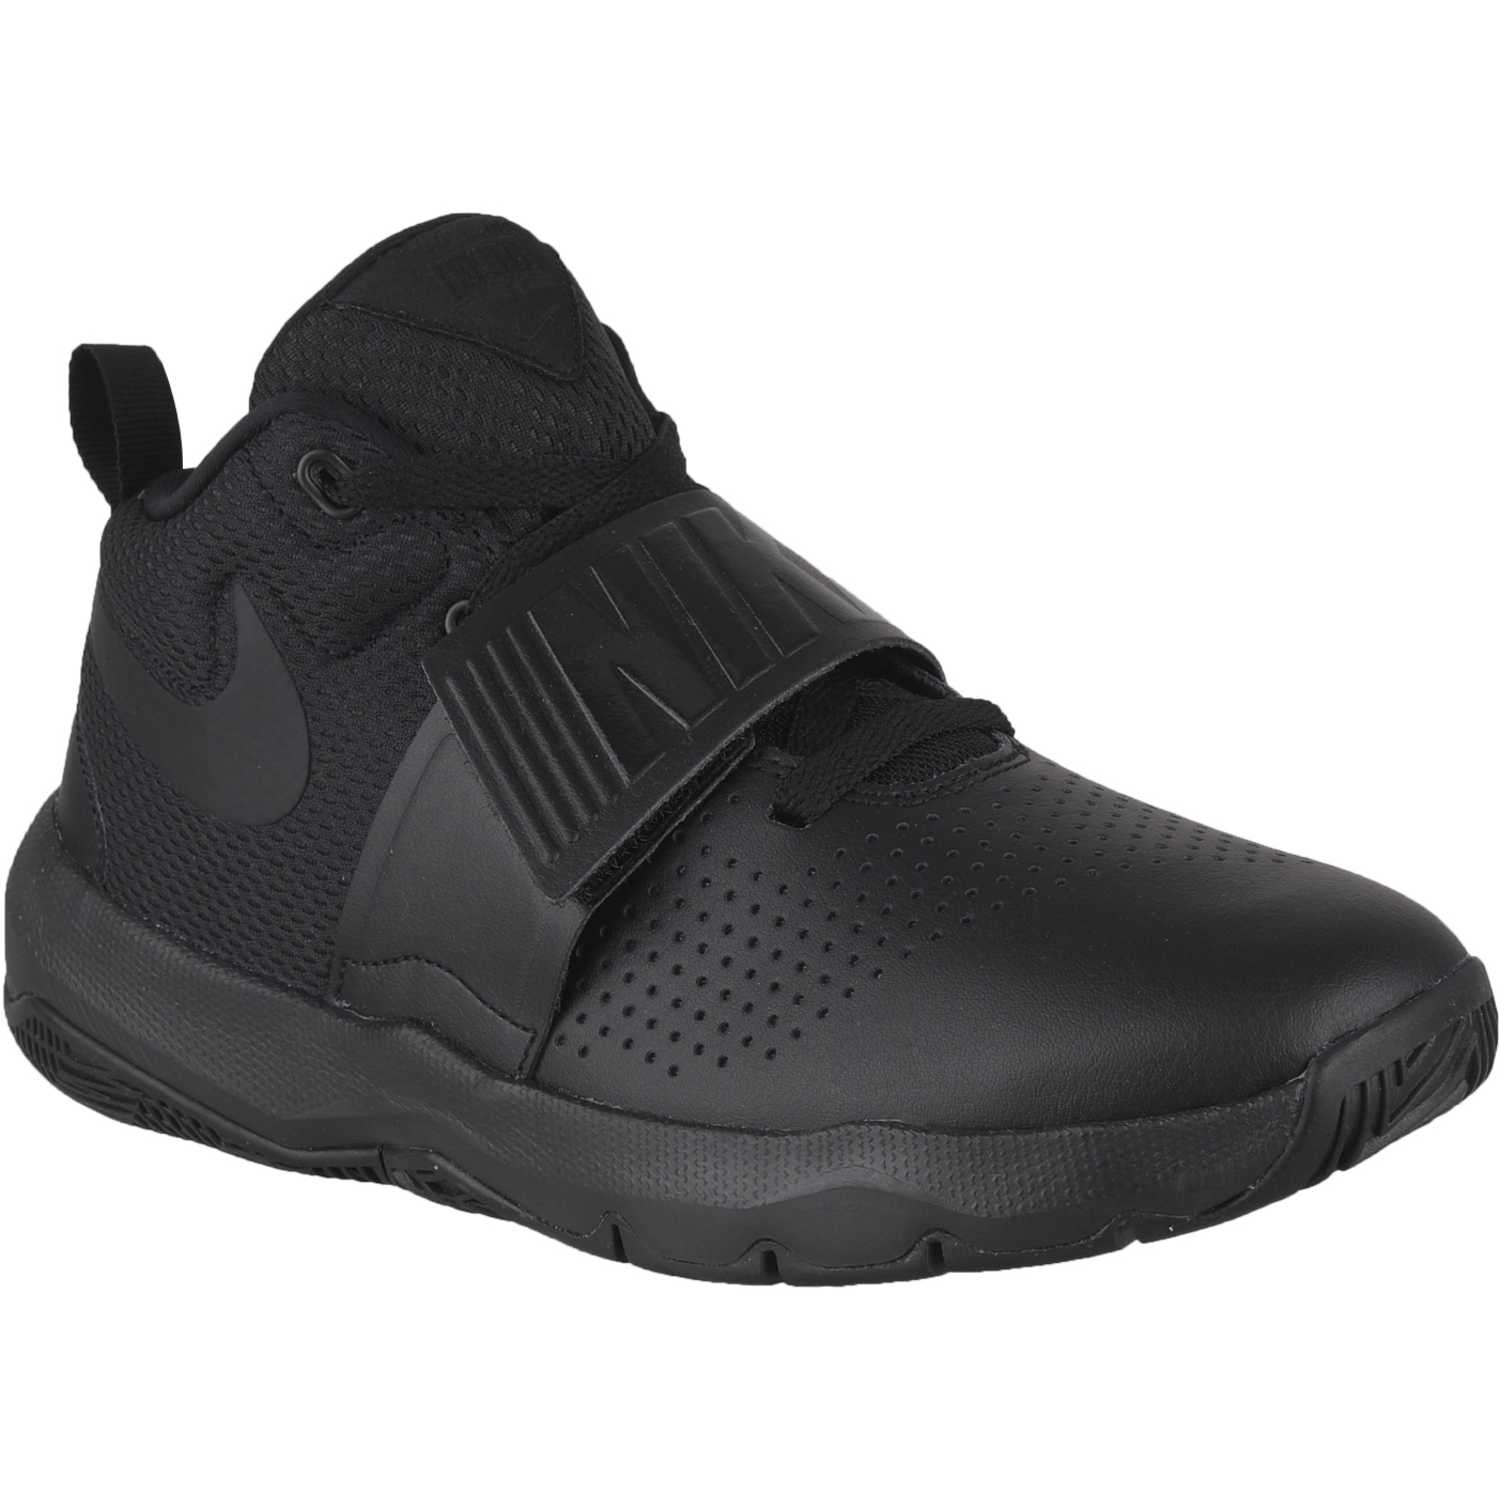 Nike team hustle d 8 bg Negro / negro Walking